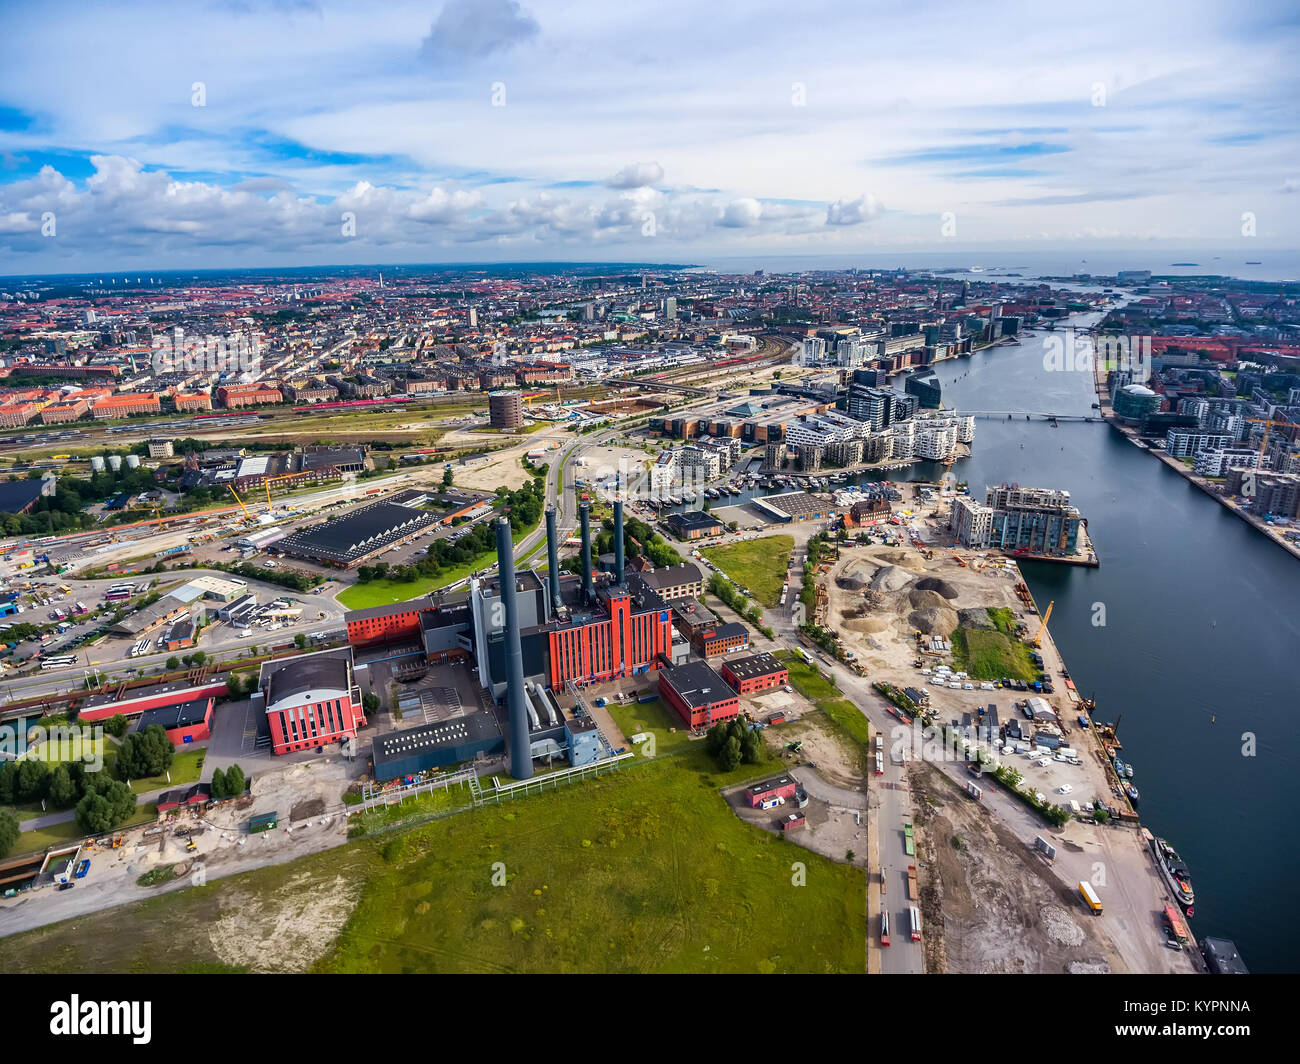 City aerial view over Copenhagen, The Denmark. View from the bird's flight. HC Oersted Power Station - Stock Image